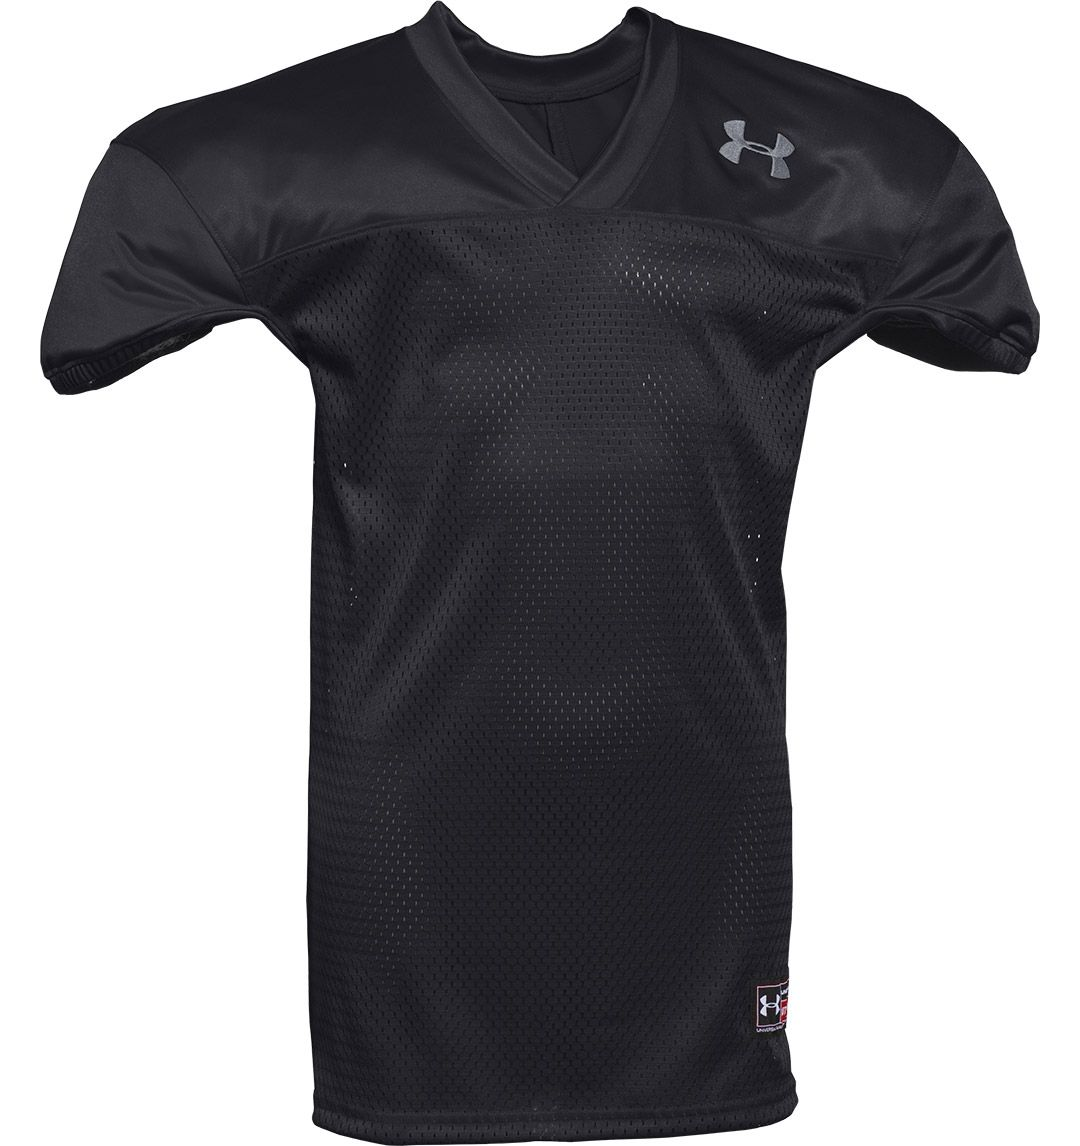 wholesale dealer c7e1b 6321a Under Armour Youth Football Practice Jersey